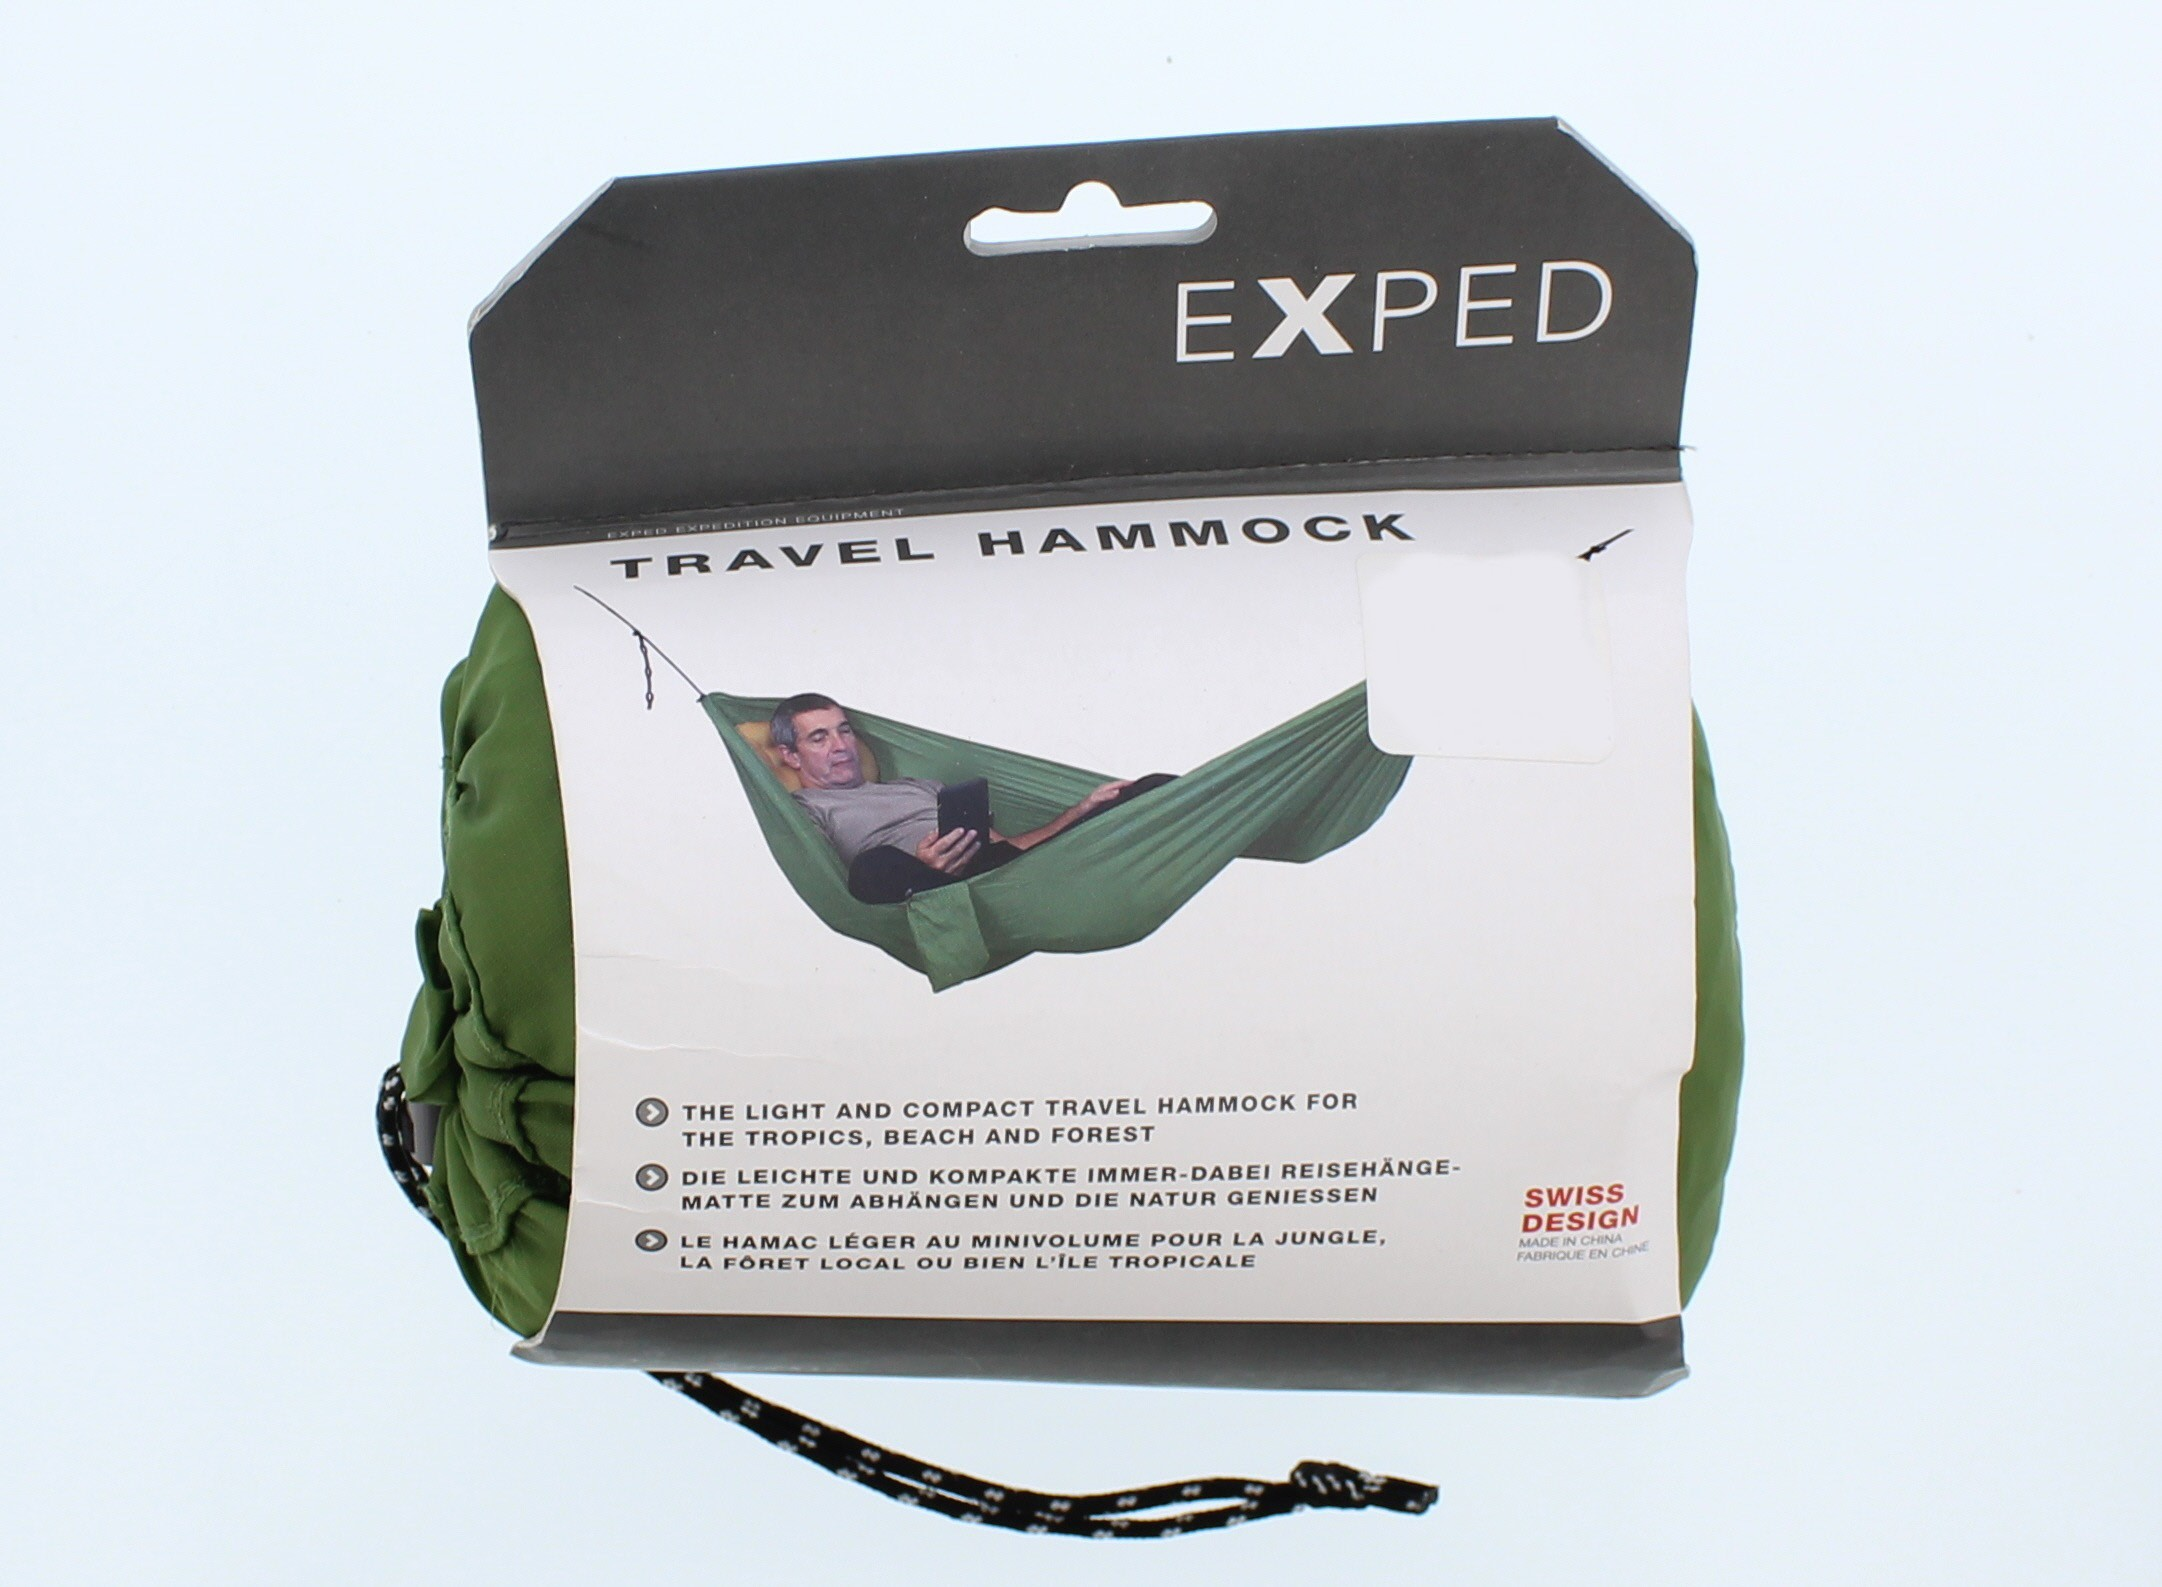 Hängematte Exped Swiss Design Exped Travel Hammock Green